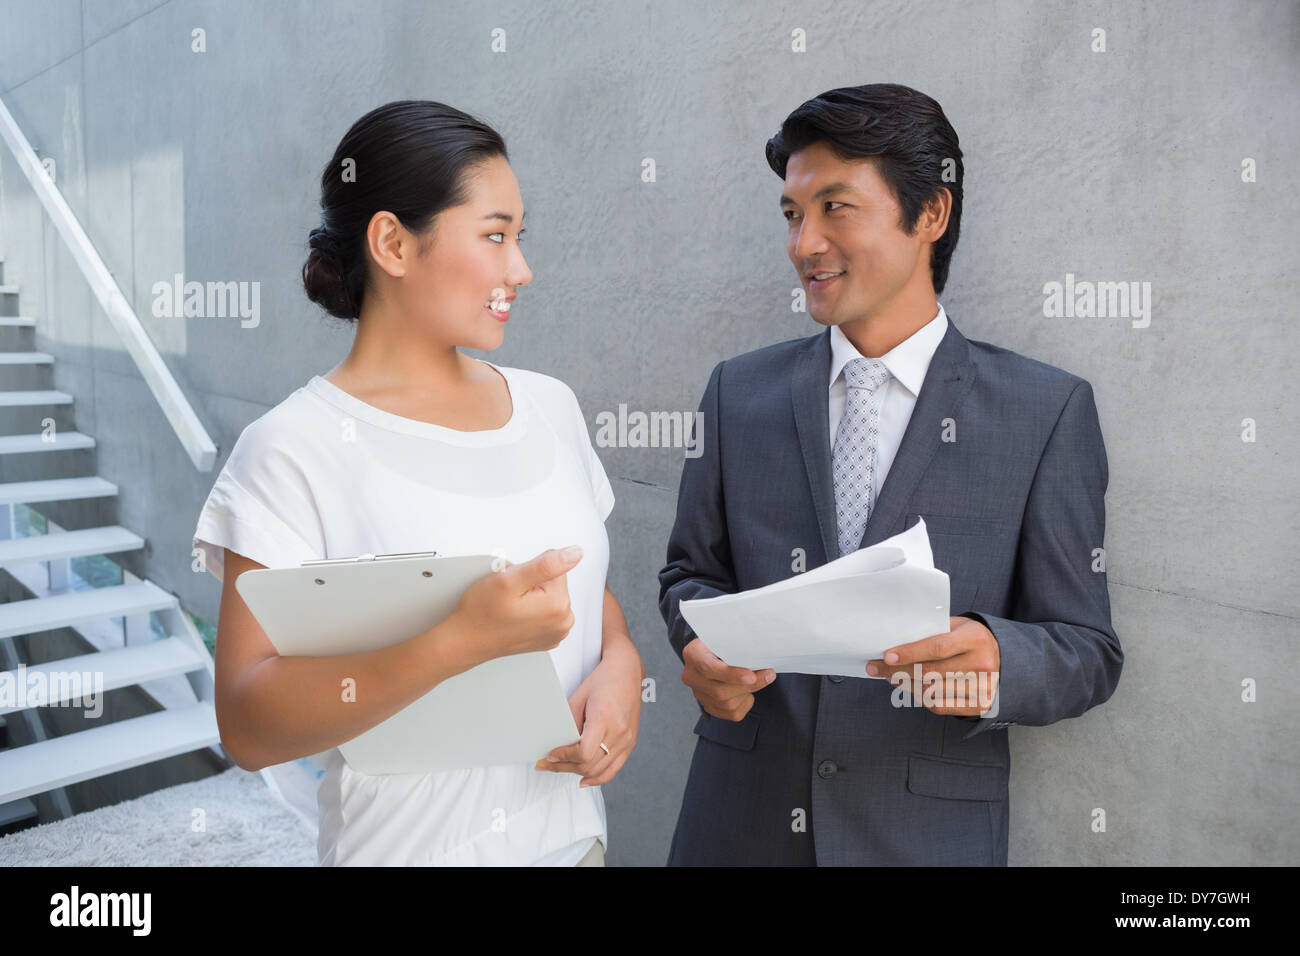 Estate agent showing lease to customer and smiling - Stock Image